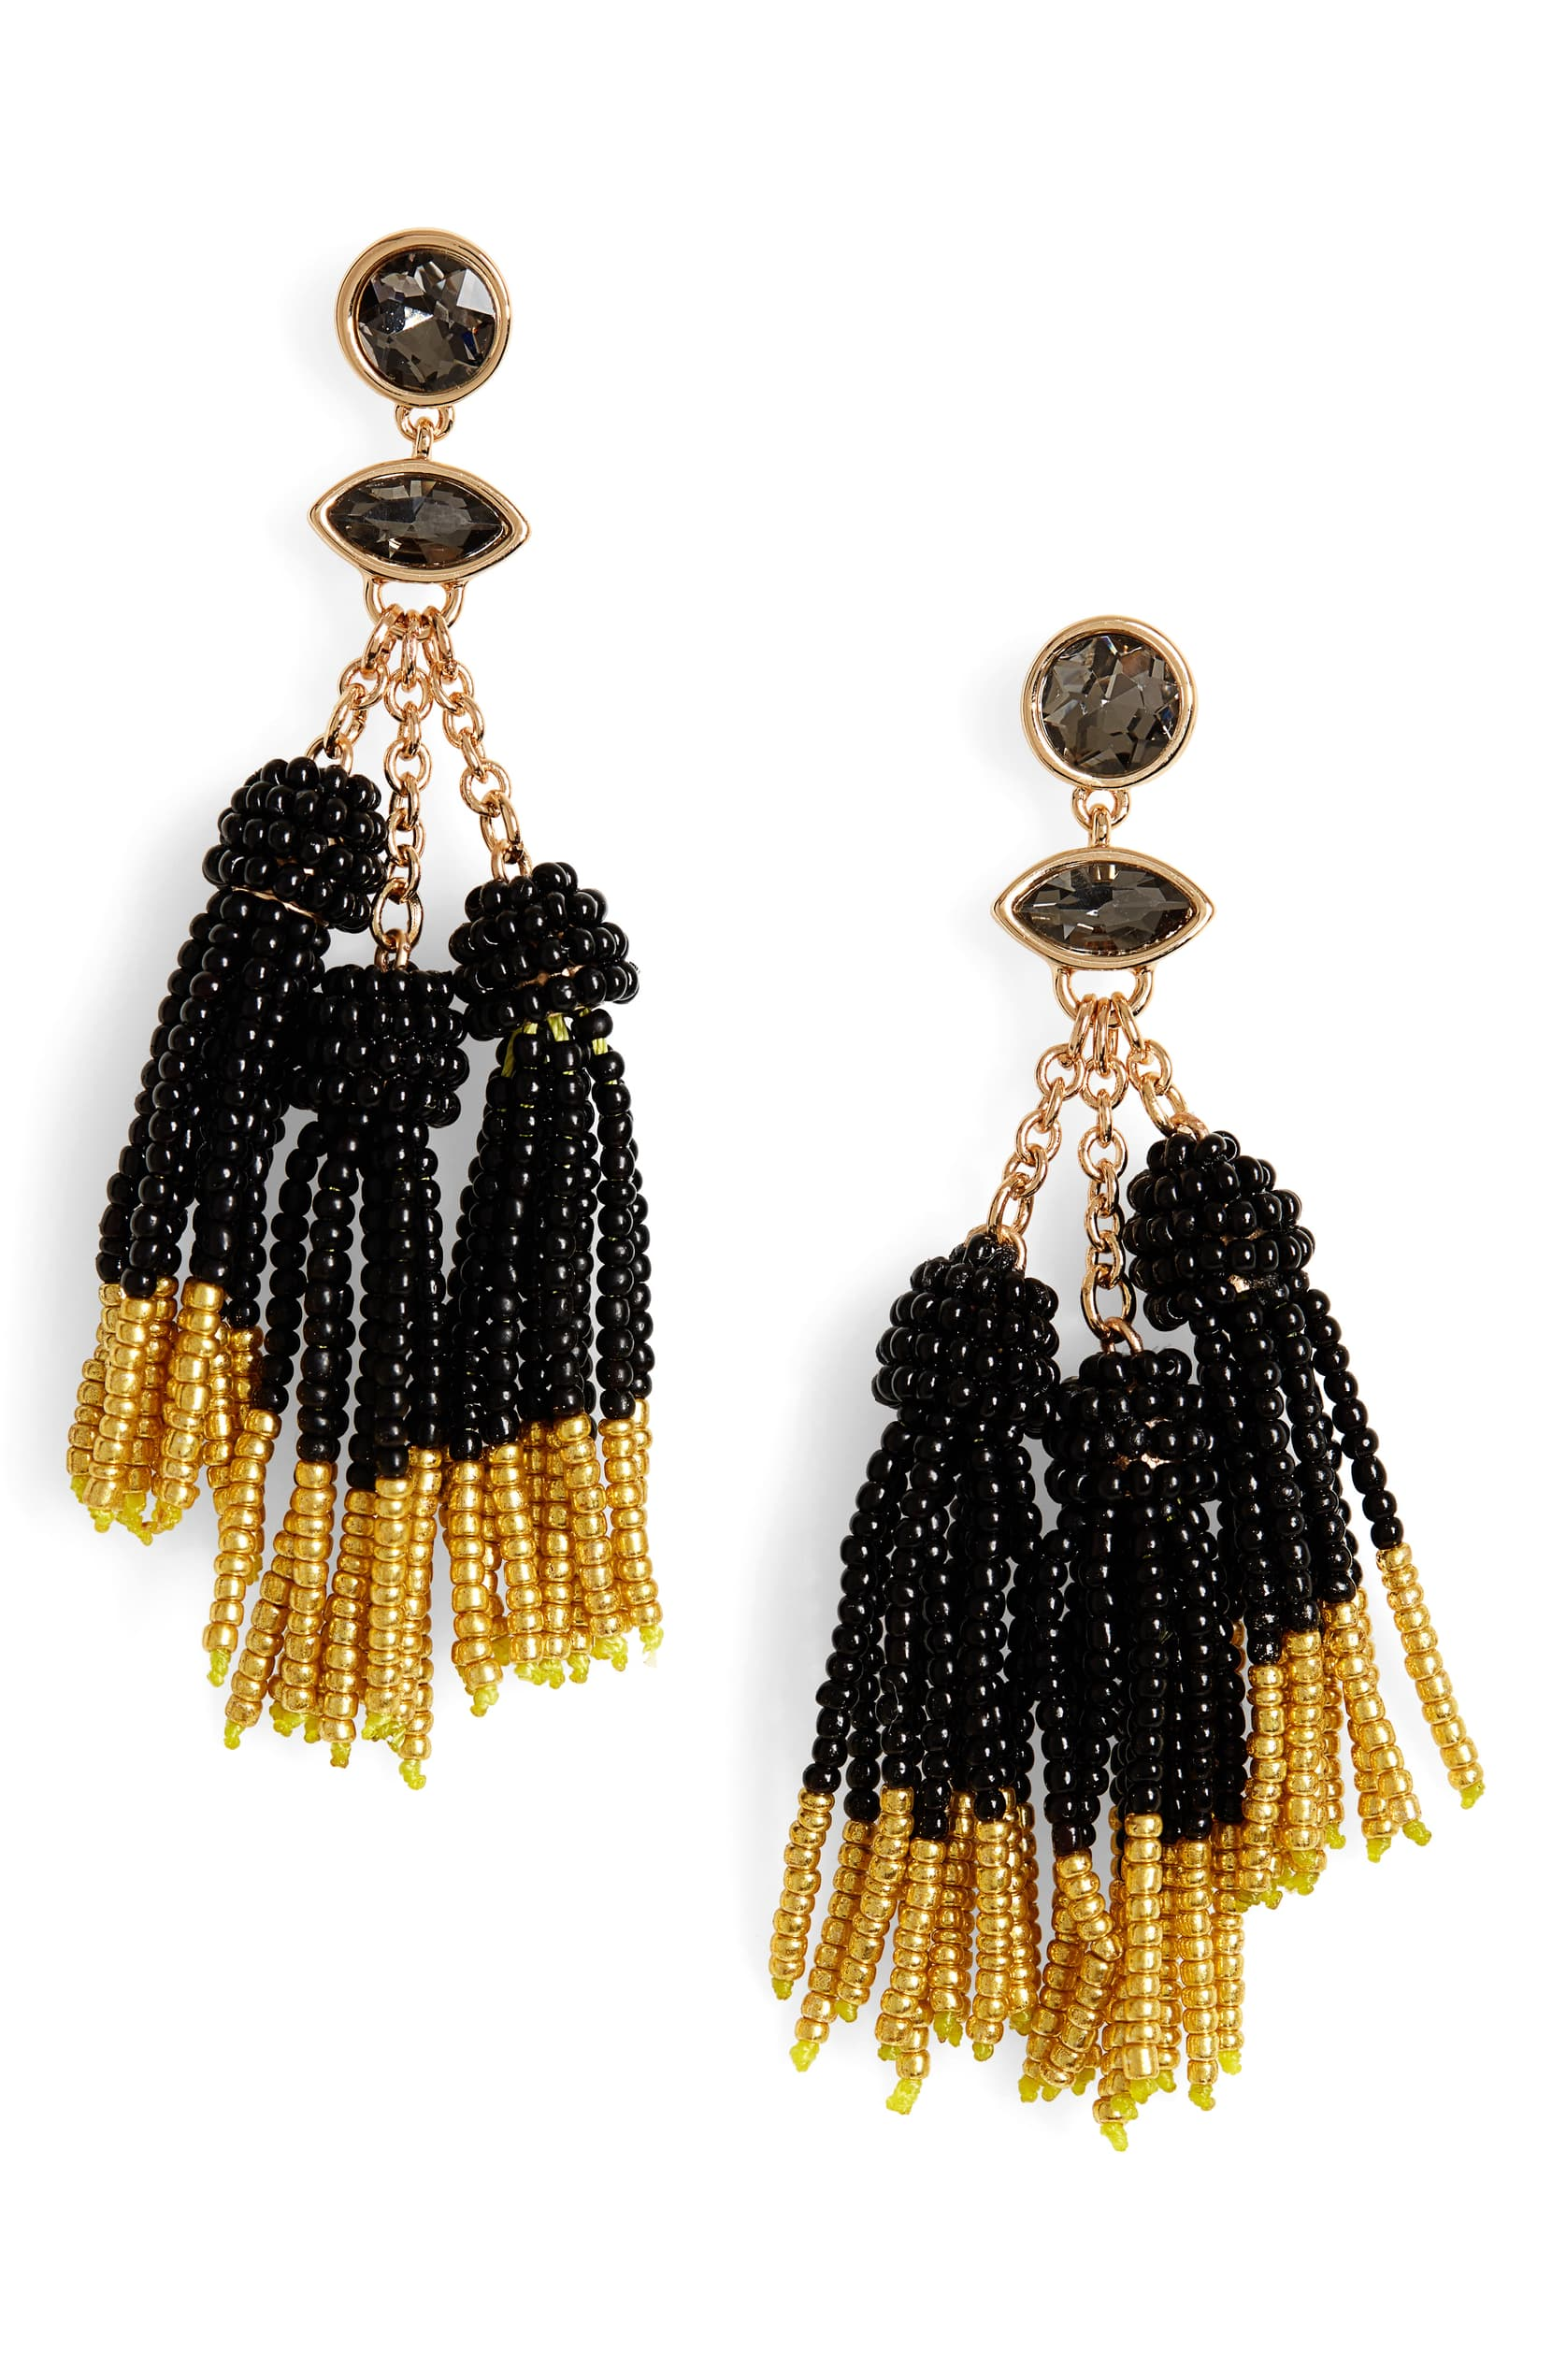 Turn a simple outfit into a statement-making one by putting on these swishy beaded-tassel earrings. Shop it{ }- $35. (Image: Nordstrom){ }